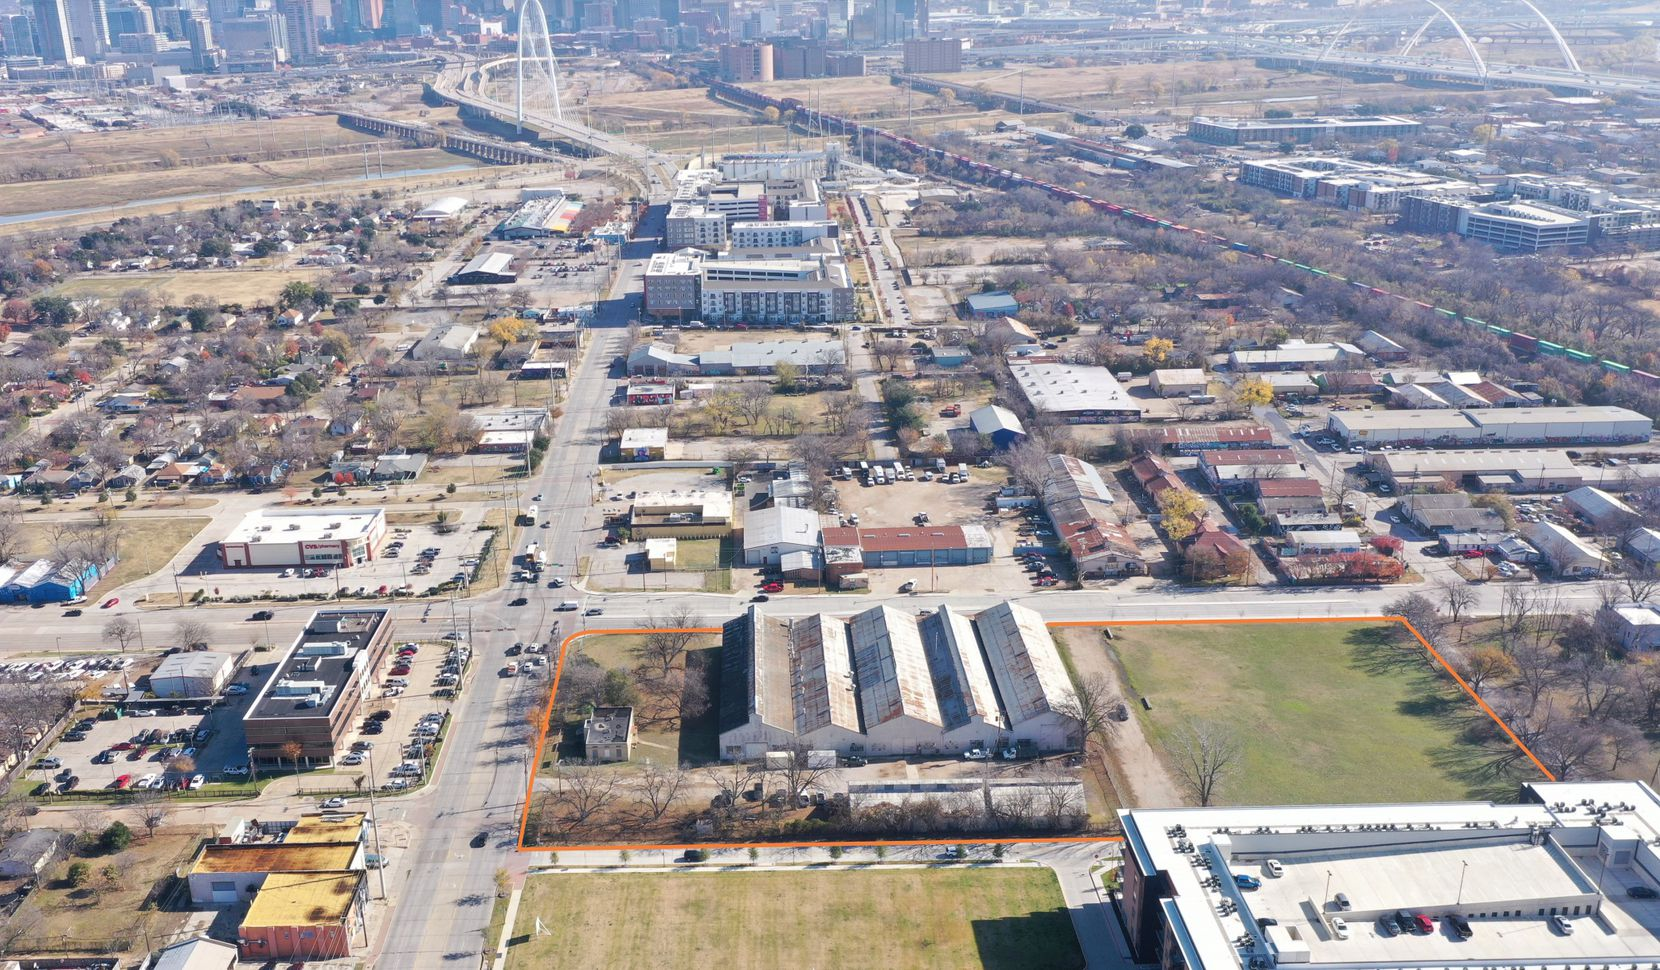 The Atlas Metal Works site includes about 6 acres at Singleton and Sylvan.